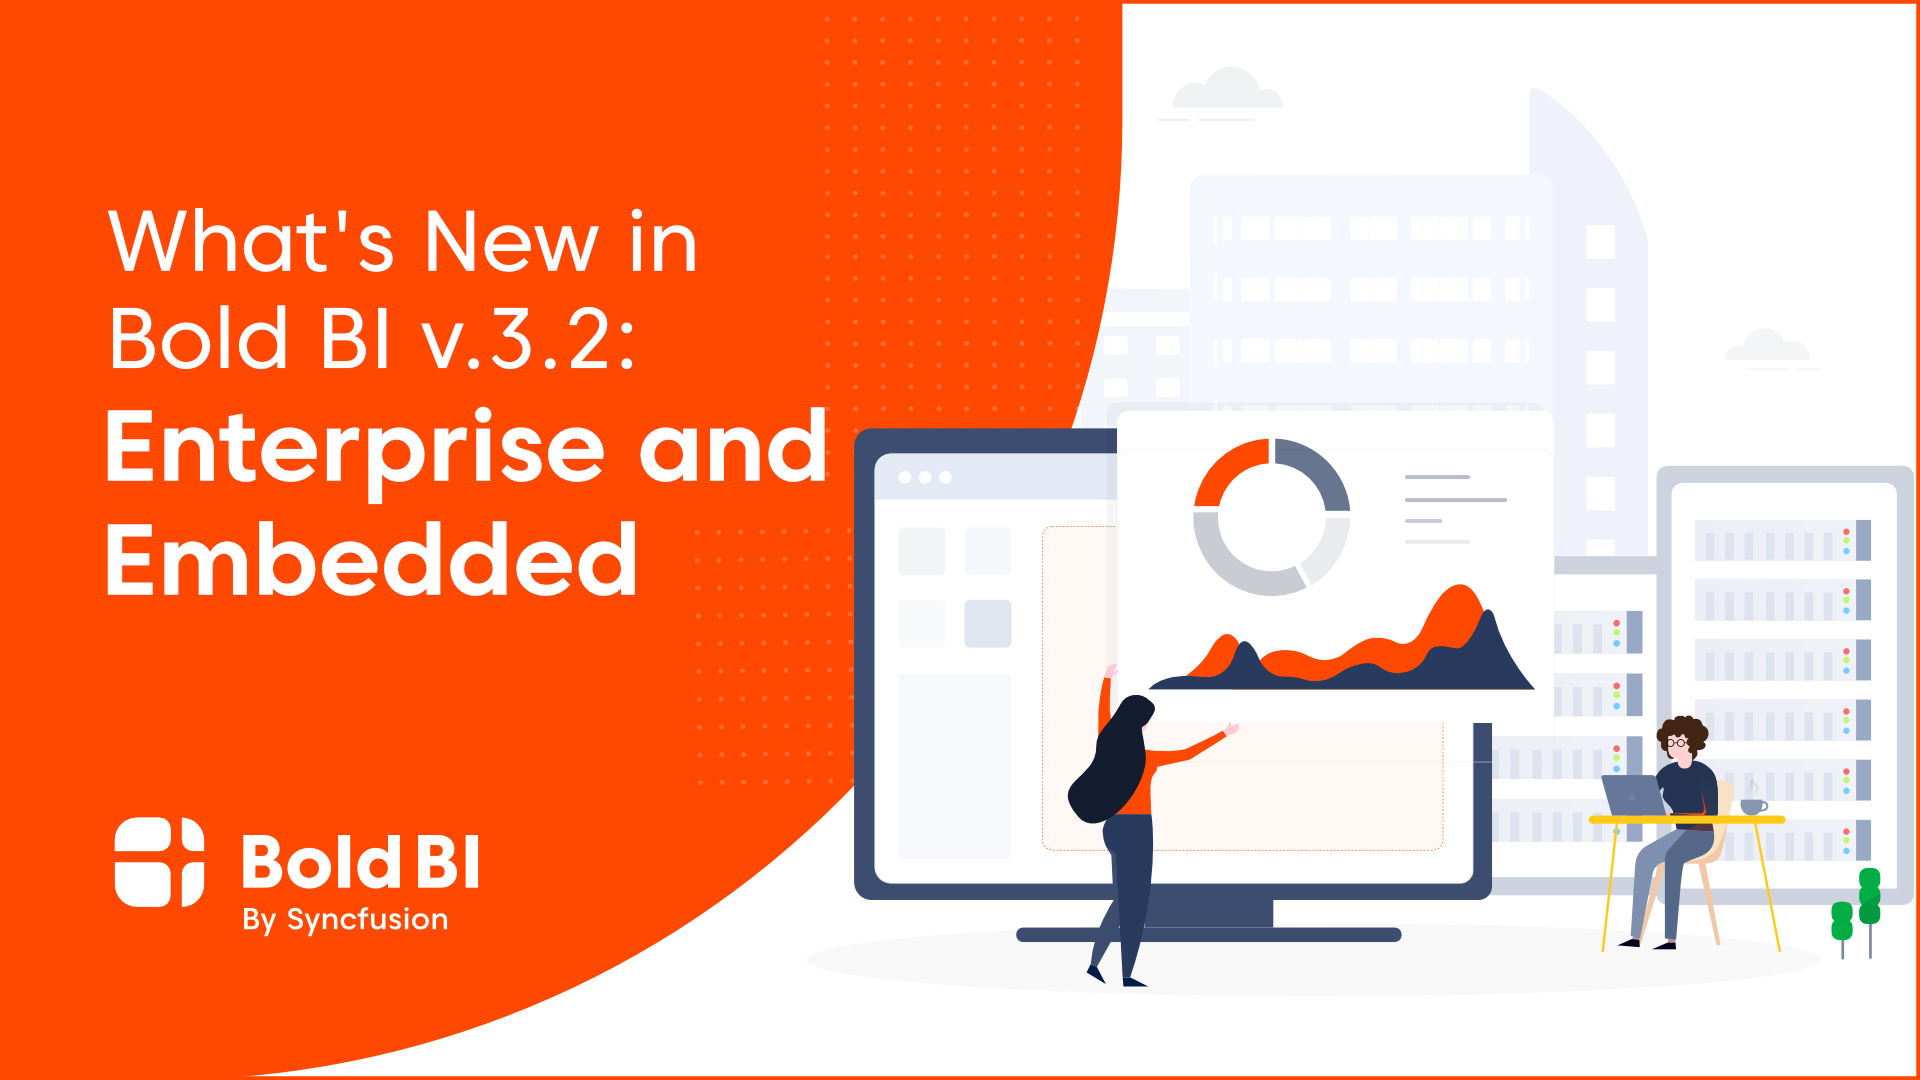 What's New in Bold BI v.3.2: Embedded